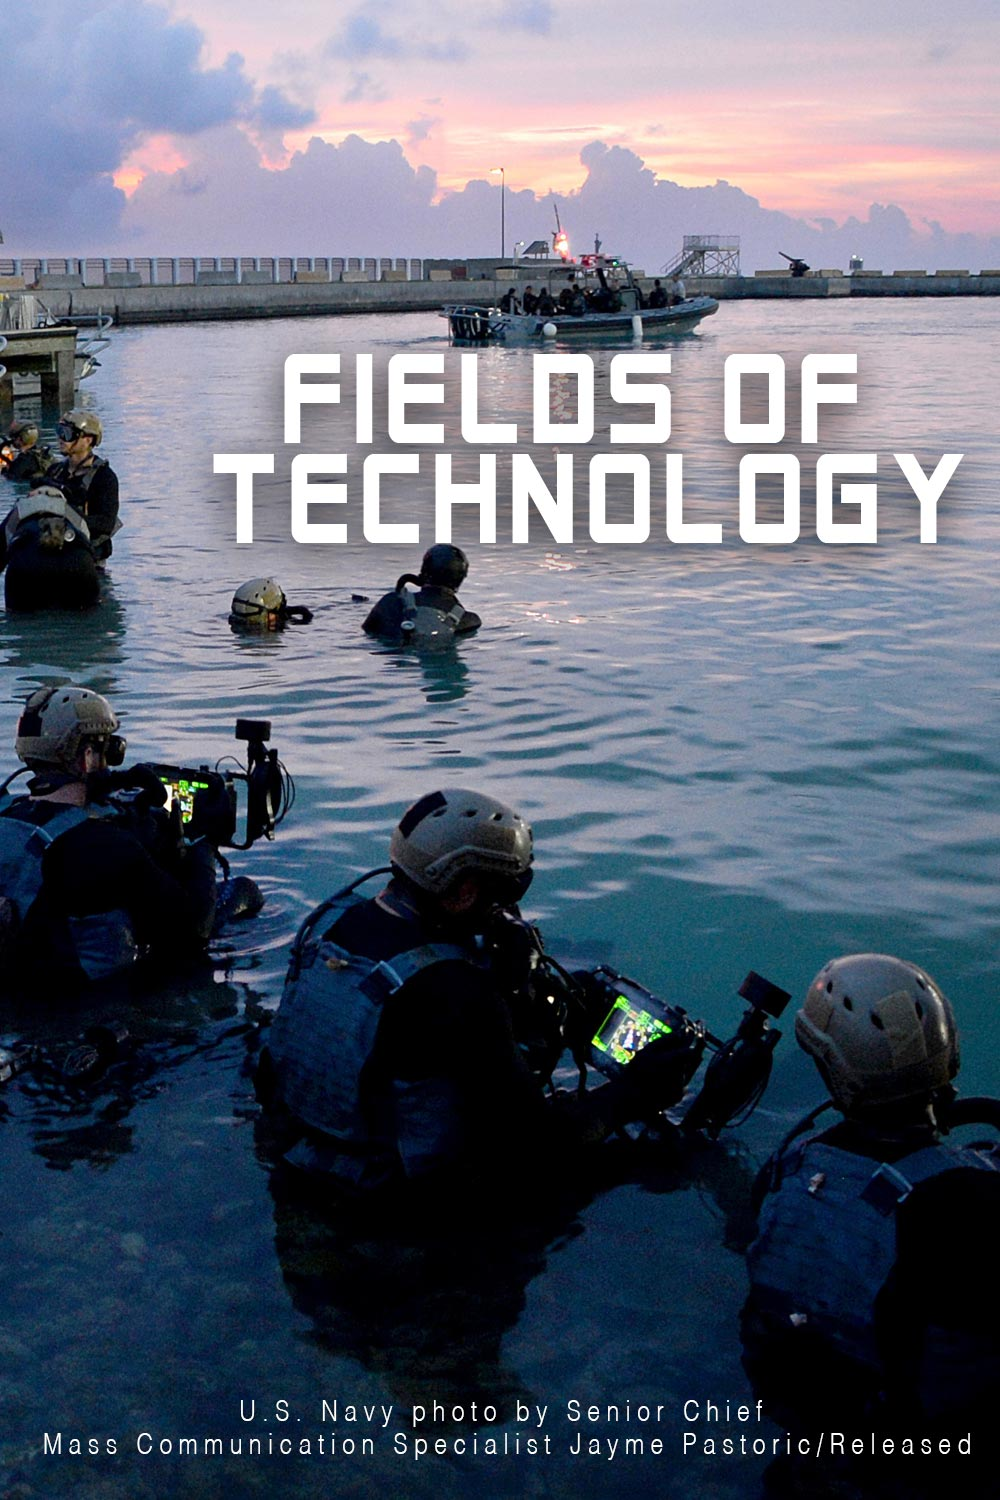 Fields of Technology